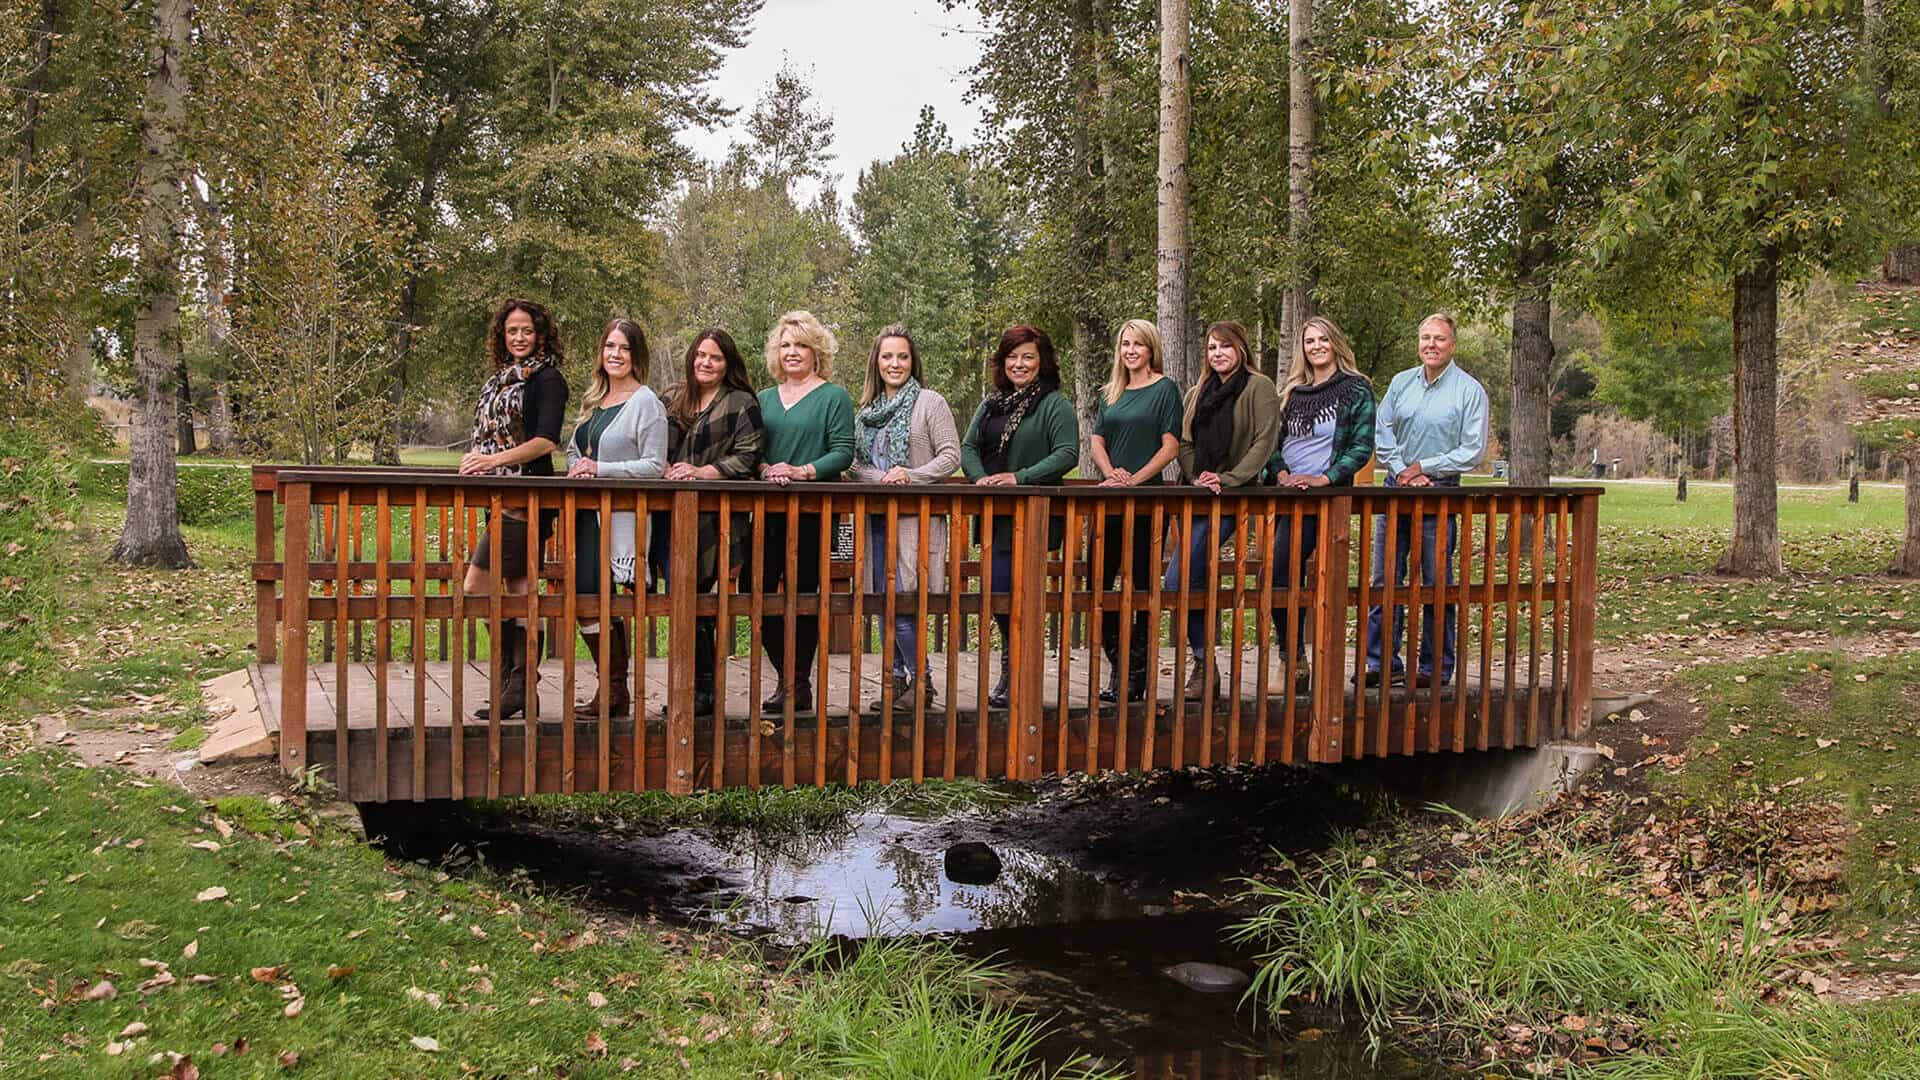 Our Canyon View Dental team standing on a wooden bridge and smiling